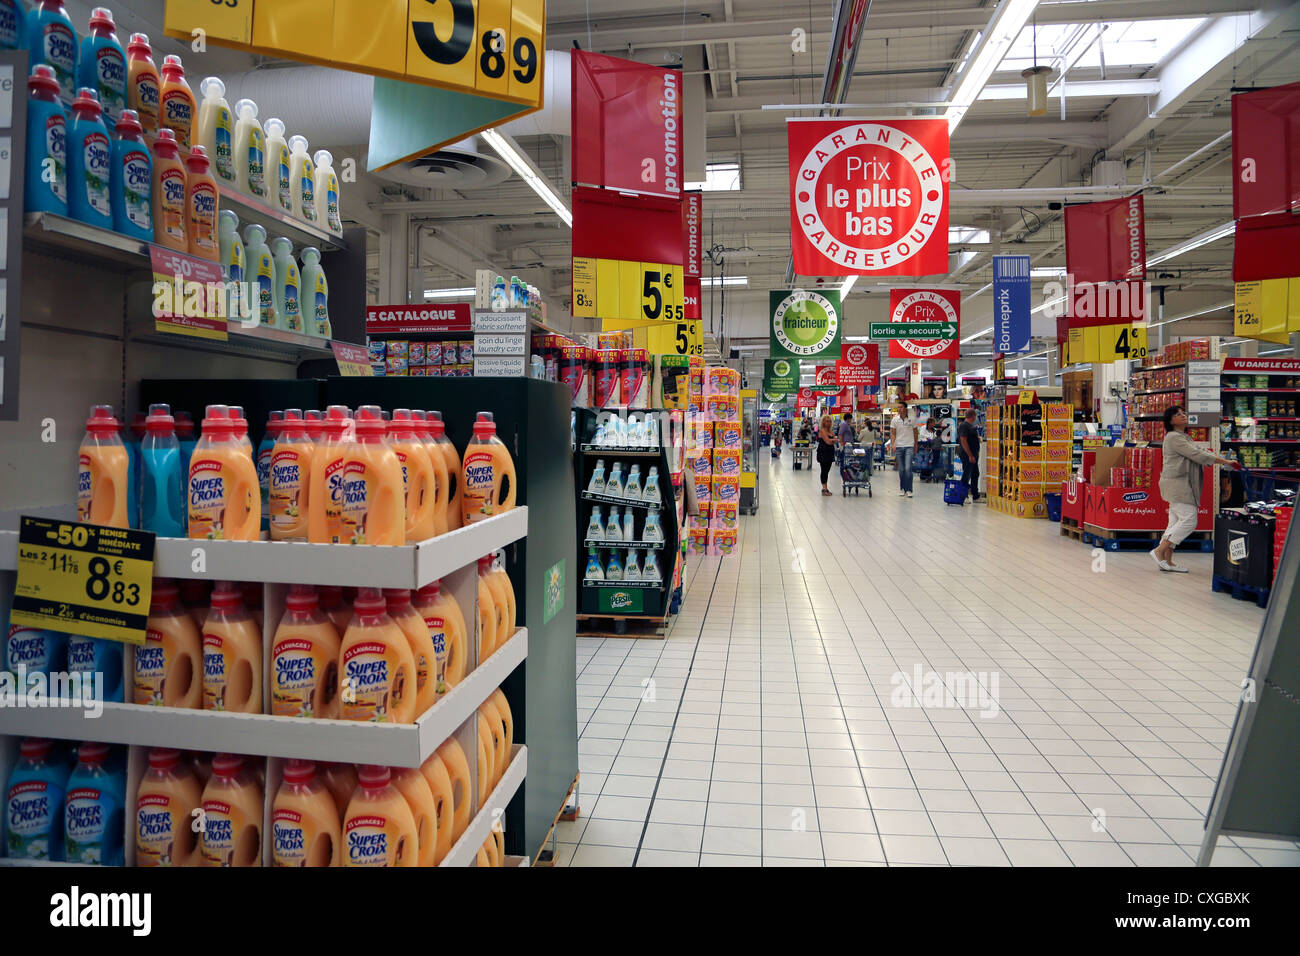 https www alamy com stock photo calais france cite europe people shopping in carrefour supermarket 50762395 html